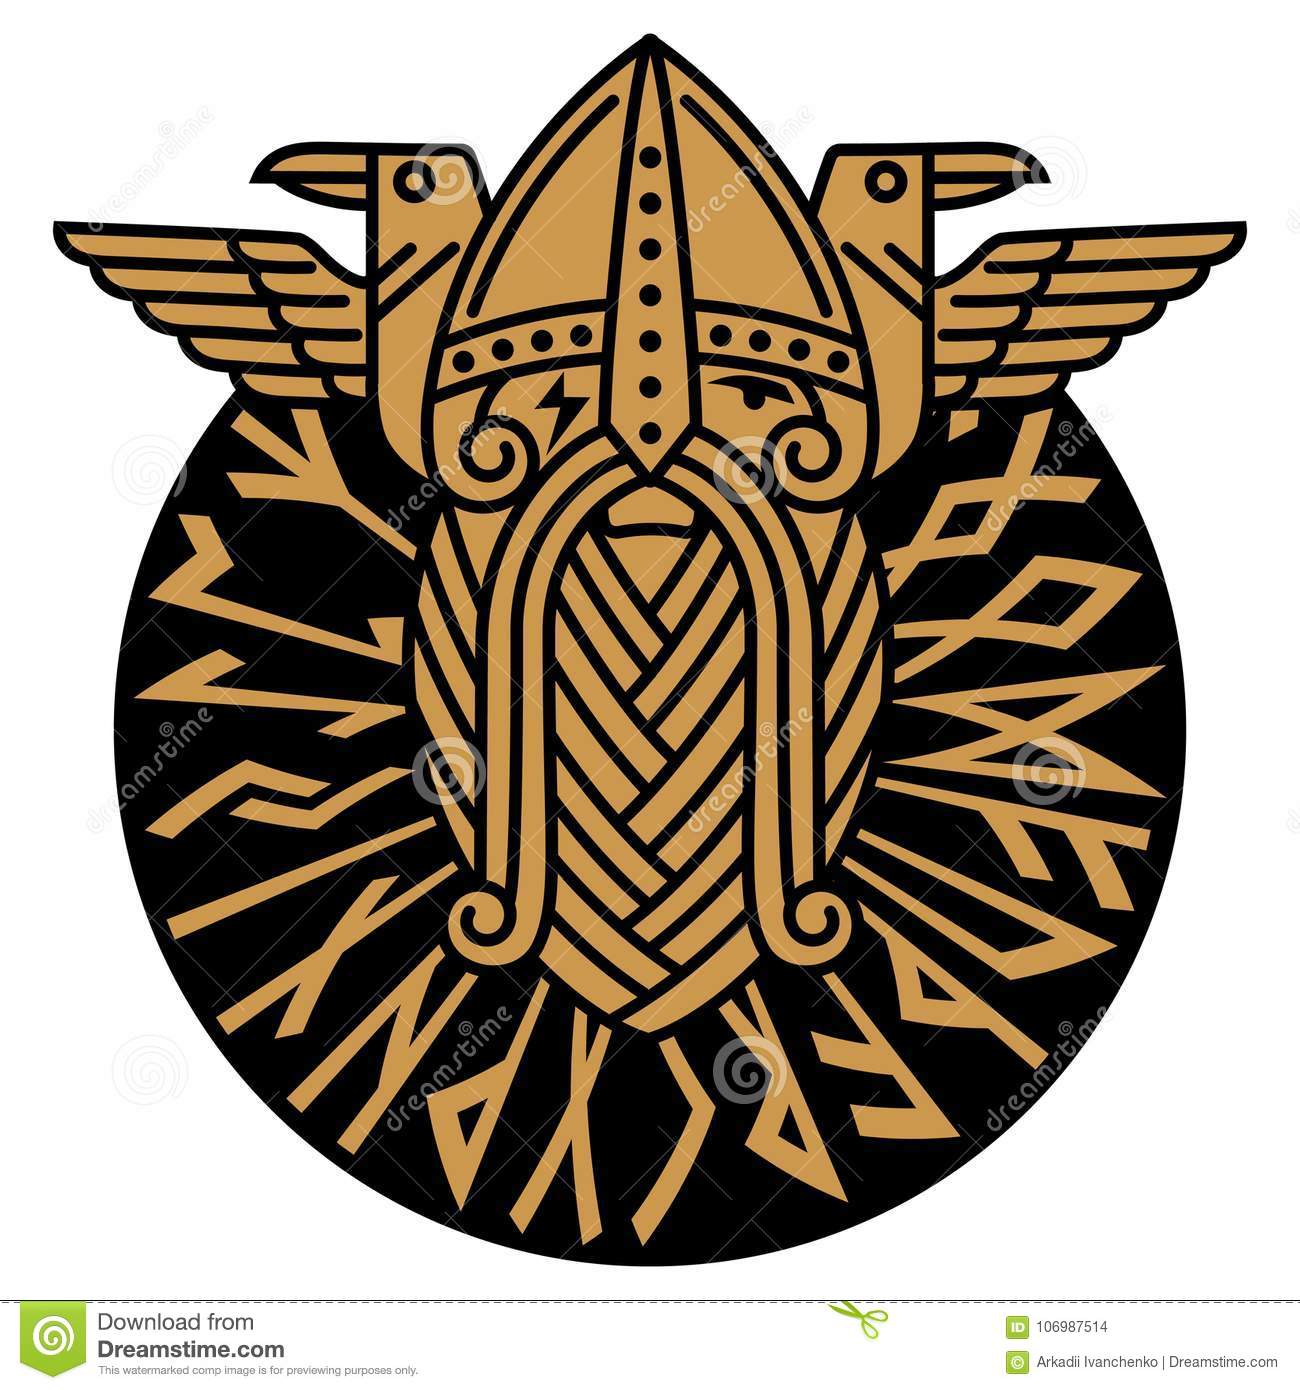 God Wotan and two ravens in a circle of Norse runes. Illustration of Norse mythology